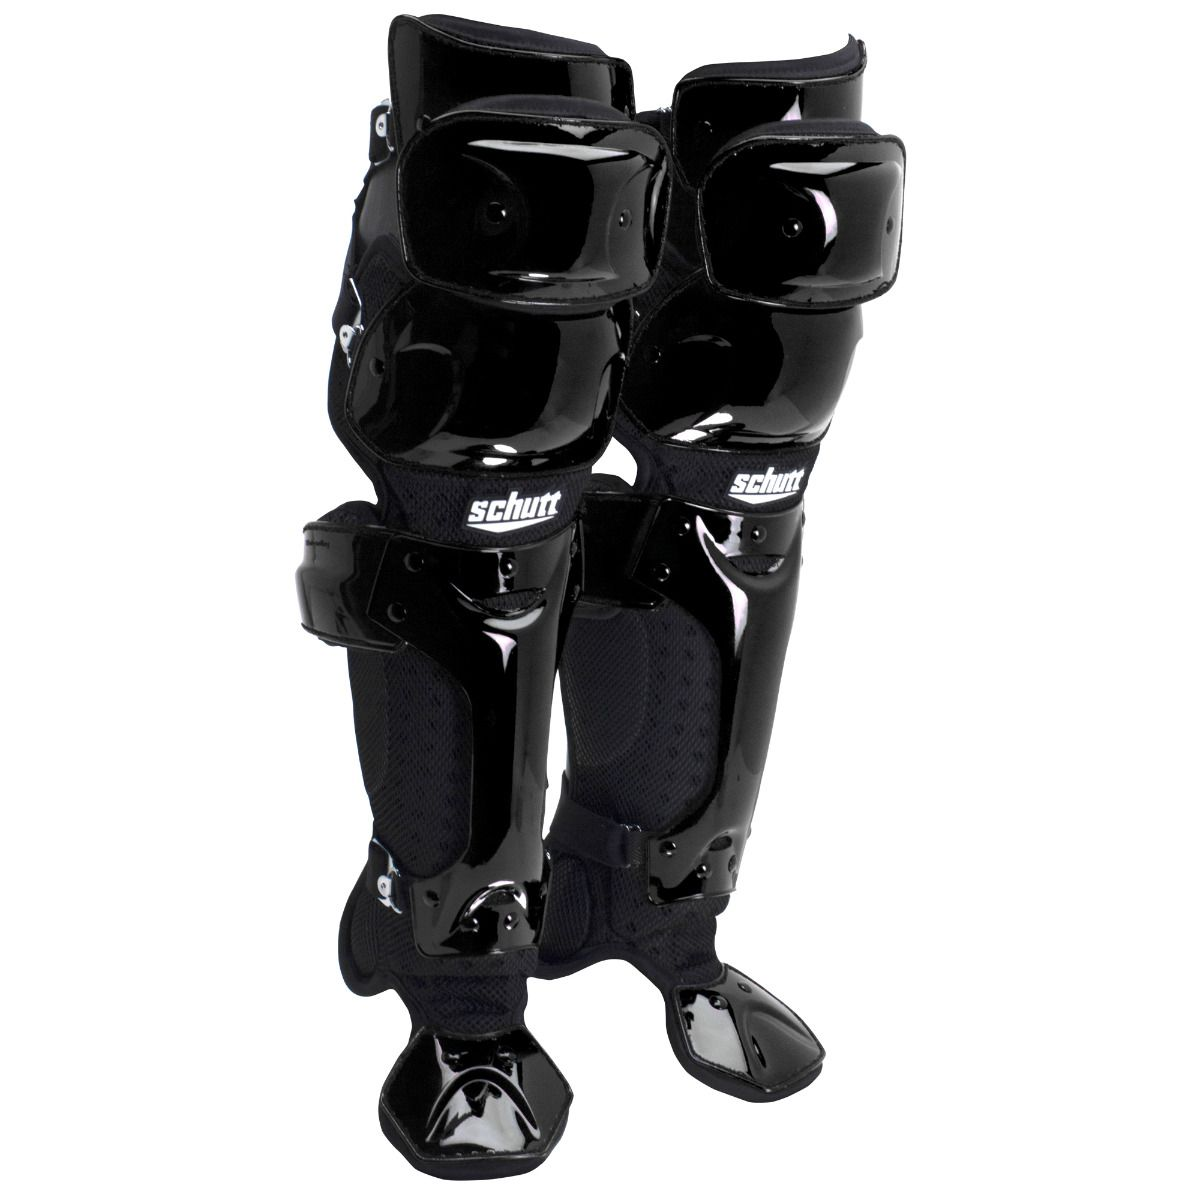 Schutt S4 Multi-Flex Catcher's Leg Guards